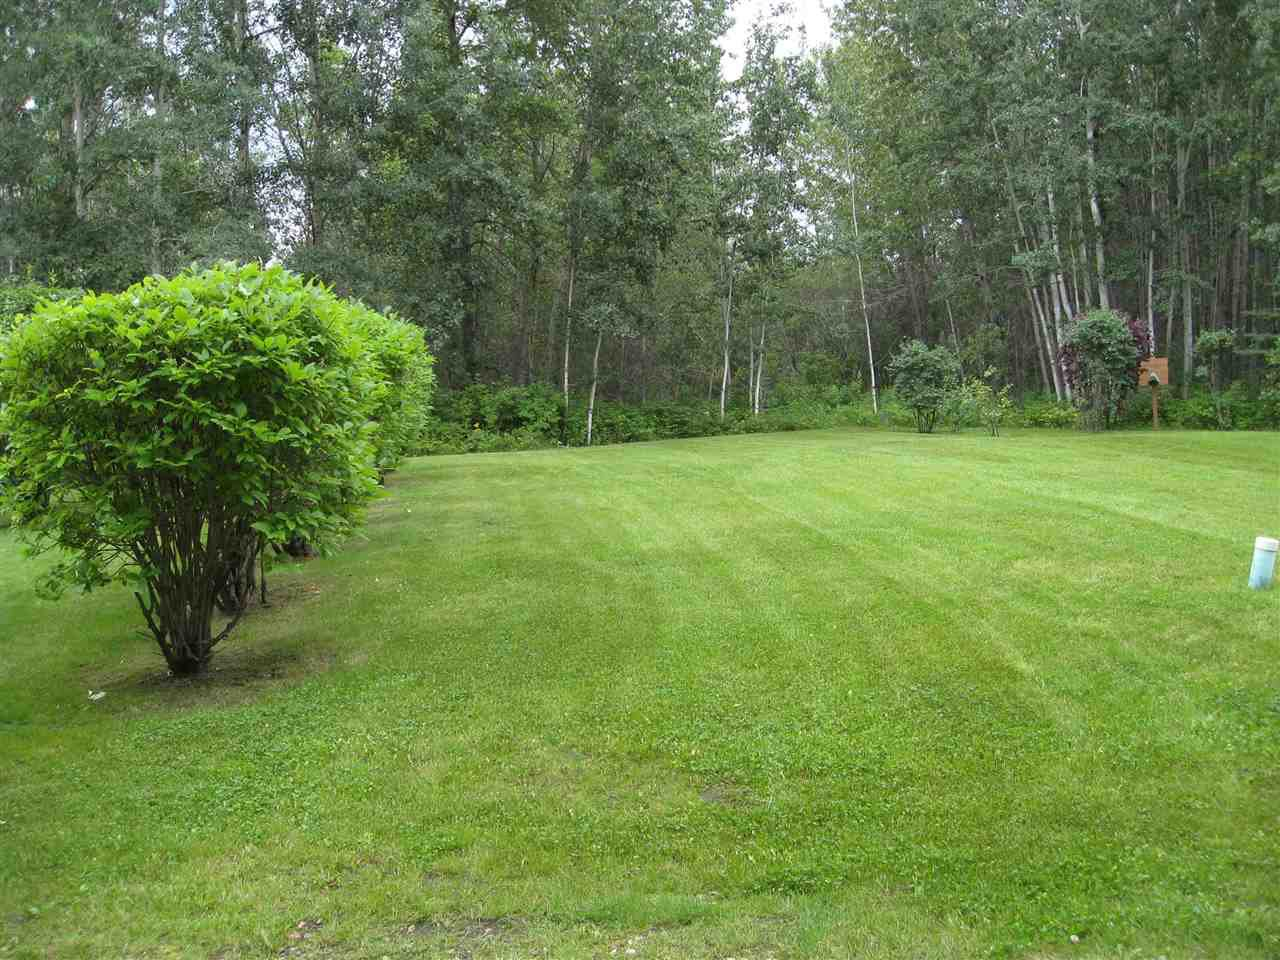 Photo 22: Photos: 5, 1319 Twp Rd 550: Rural Lac Ste. Anne County House for sale : MLS®# E4167720